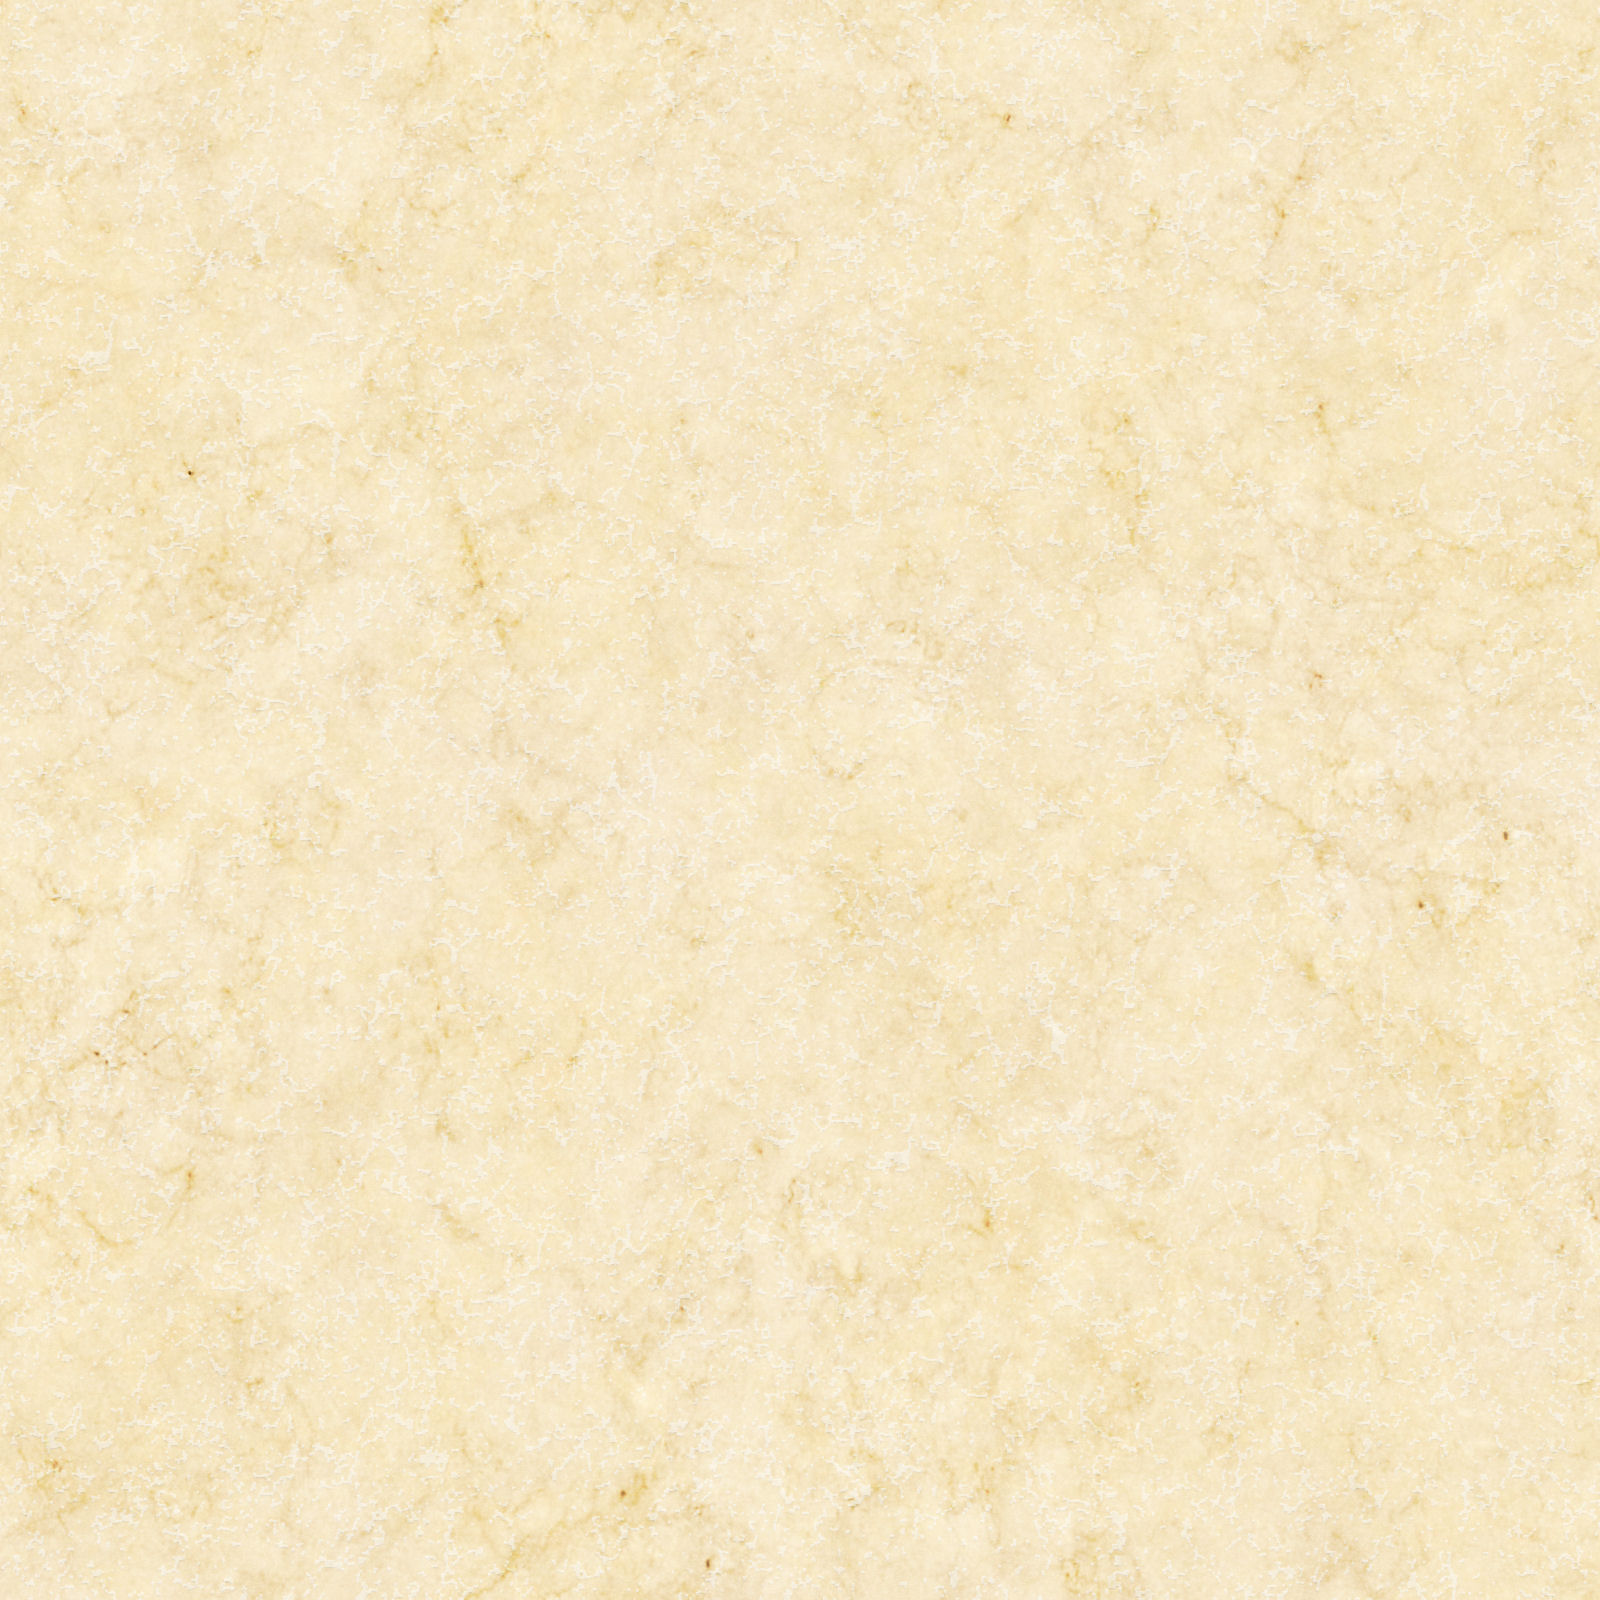 Top Wallpaper Marble Cream - 1f6a0ba75f6da3a9c5a335092f73b12a  Best Photo Reference_889743.png